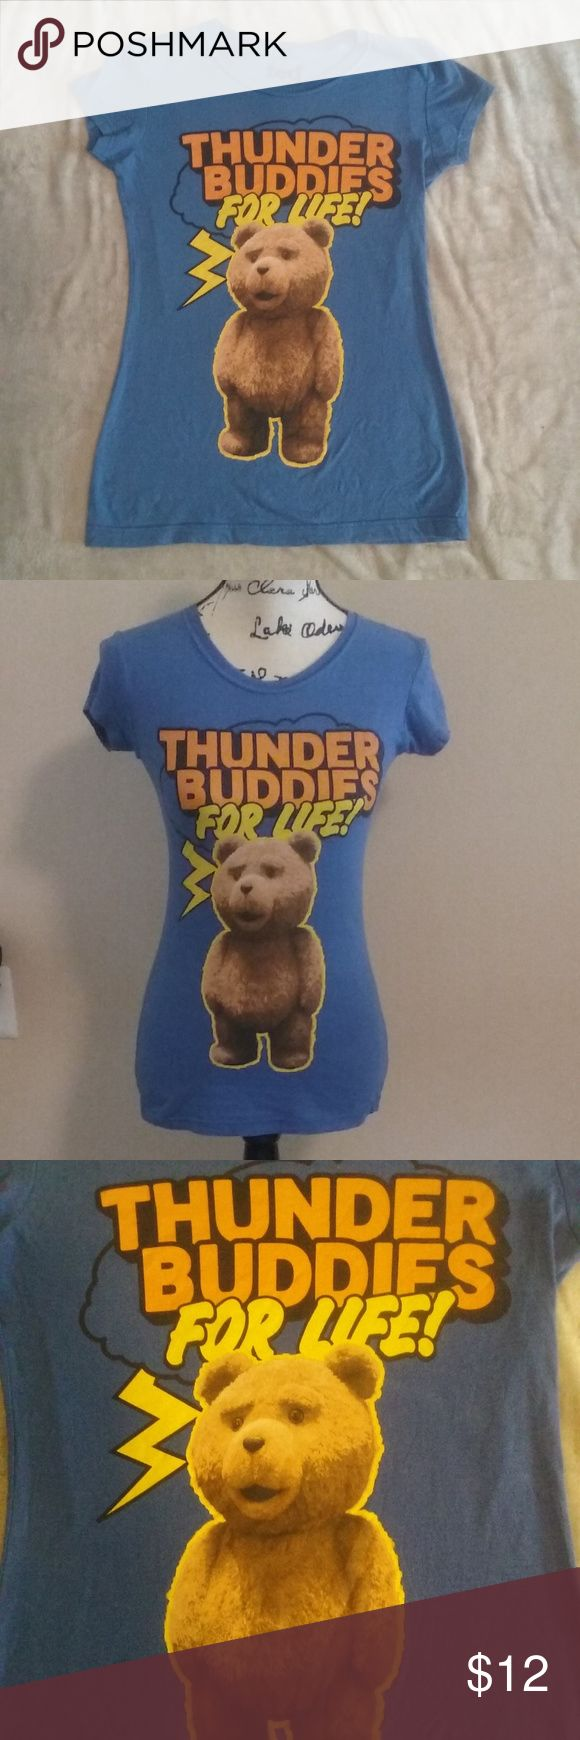 "Ted Thunder Buddies JRS Slim Fit T-shirt Small Cute blue juniors slim fit Ted Thunder Buddies for Life graphic t-shirt , size small measures approximately 23"" long from back collar and 15.5"" underarm to underarm. Ripple Junction Tops Tees - Short Sleeve"